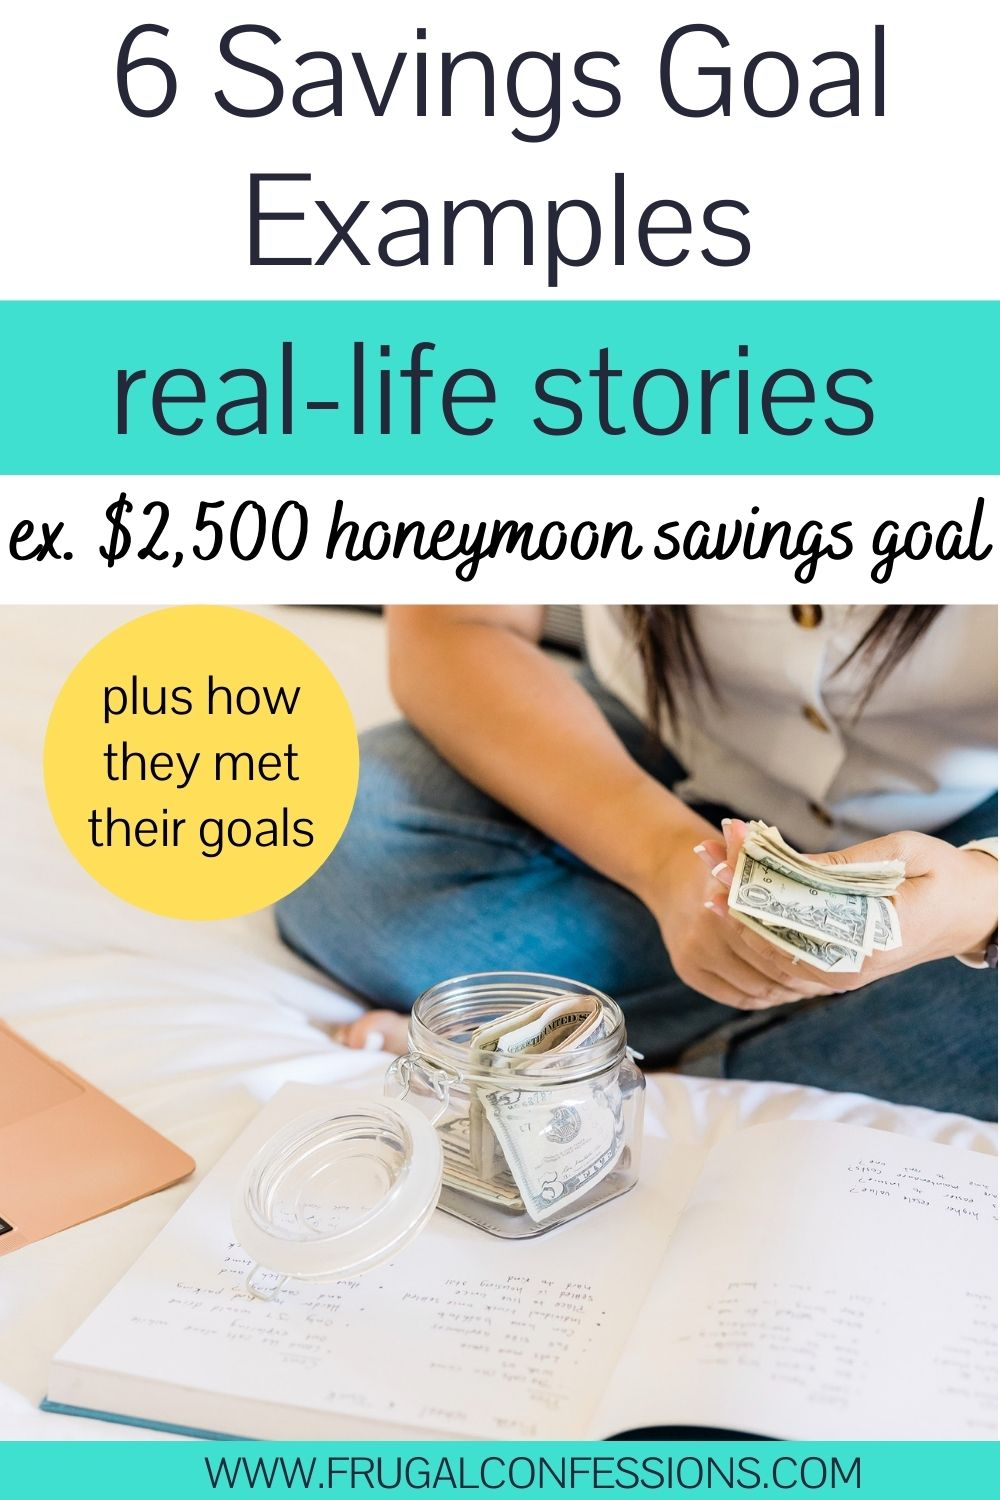 """woman on bed counting money, text overlay """"6 saving goals examples - real life stories, like $2,500 honeymoon savings goal"""""""